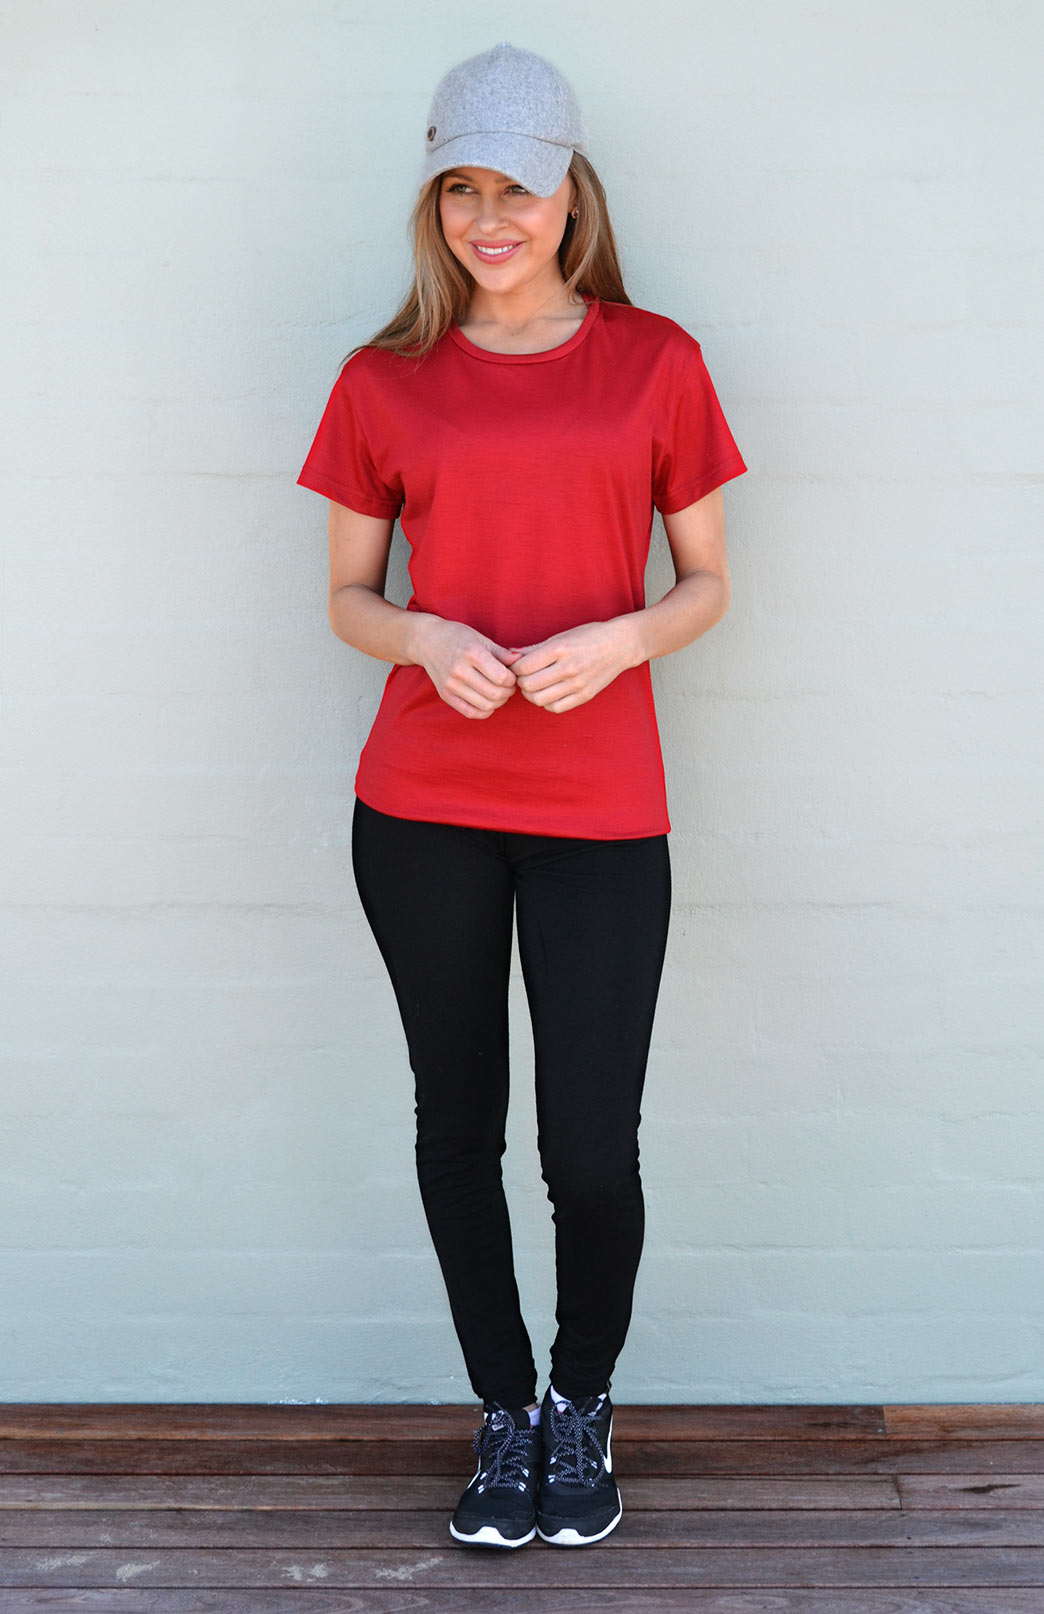 Short Sleeved Crew Neck T-Shirt - Ultralight (170g) - Women's Flame Red Wool Short Sleeved Crew Neck T-Shirt - Smitten Merino Tasmania Australia